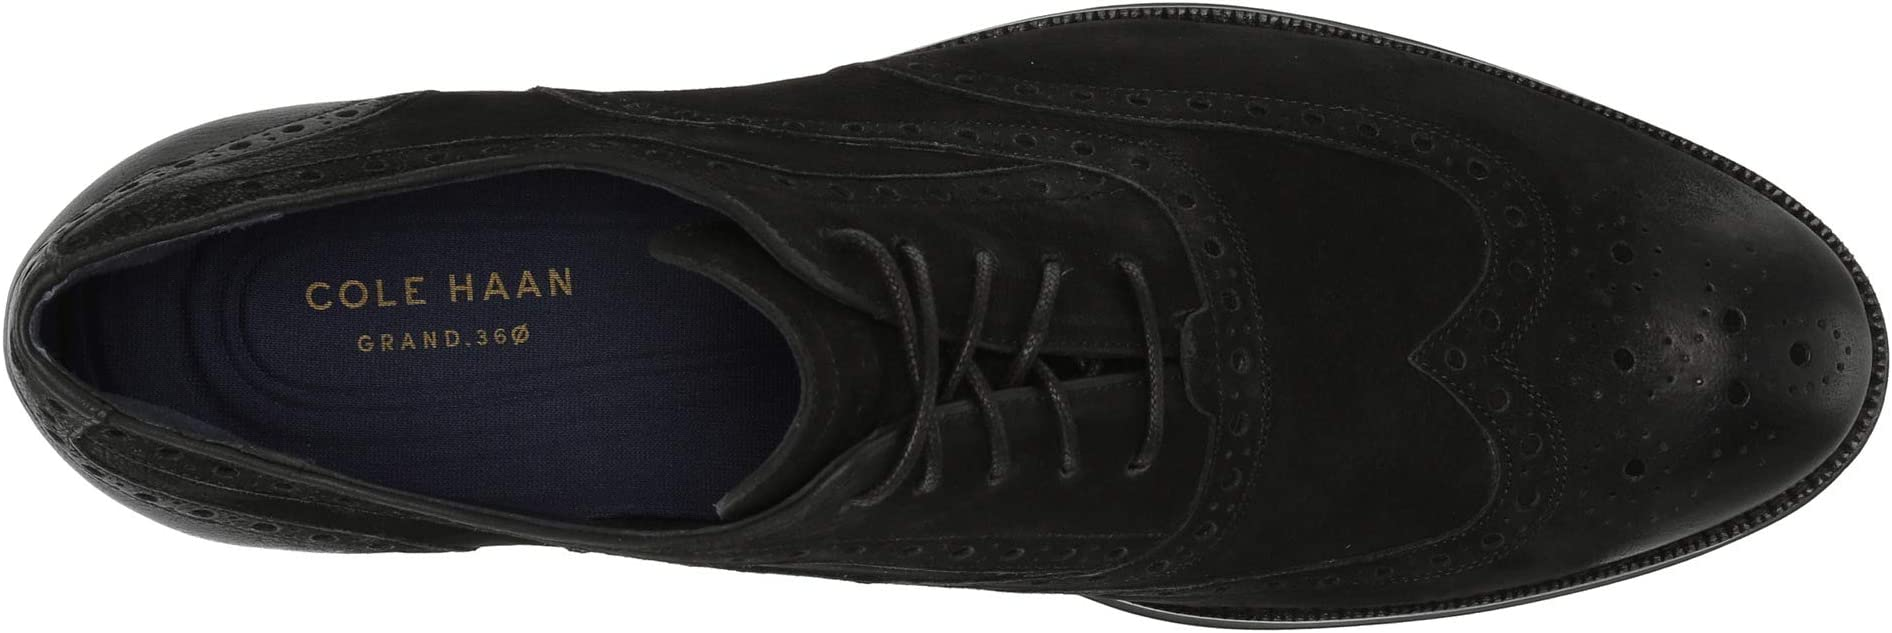 Cole Haan Lewis Grand 2.0 Wing Tip Oxford | Men's shoes | 2020 Newest